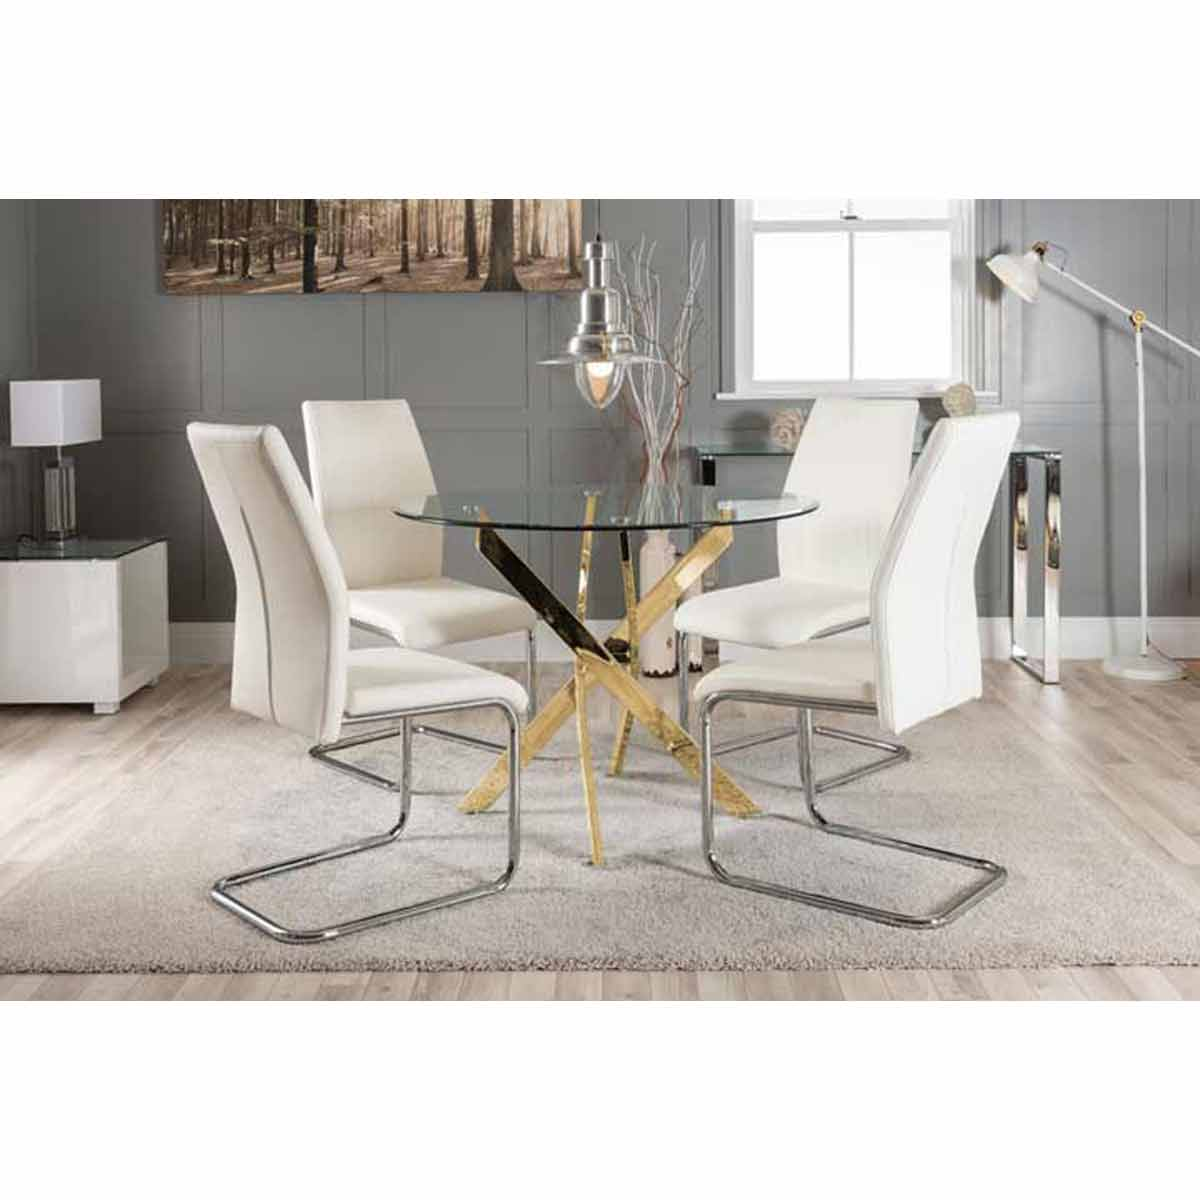 Furniture Box Novara Gold Metal Round Glass Dining Table And 4 White Lorenzo Dining Chairs